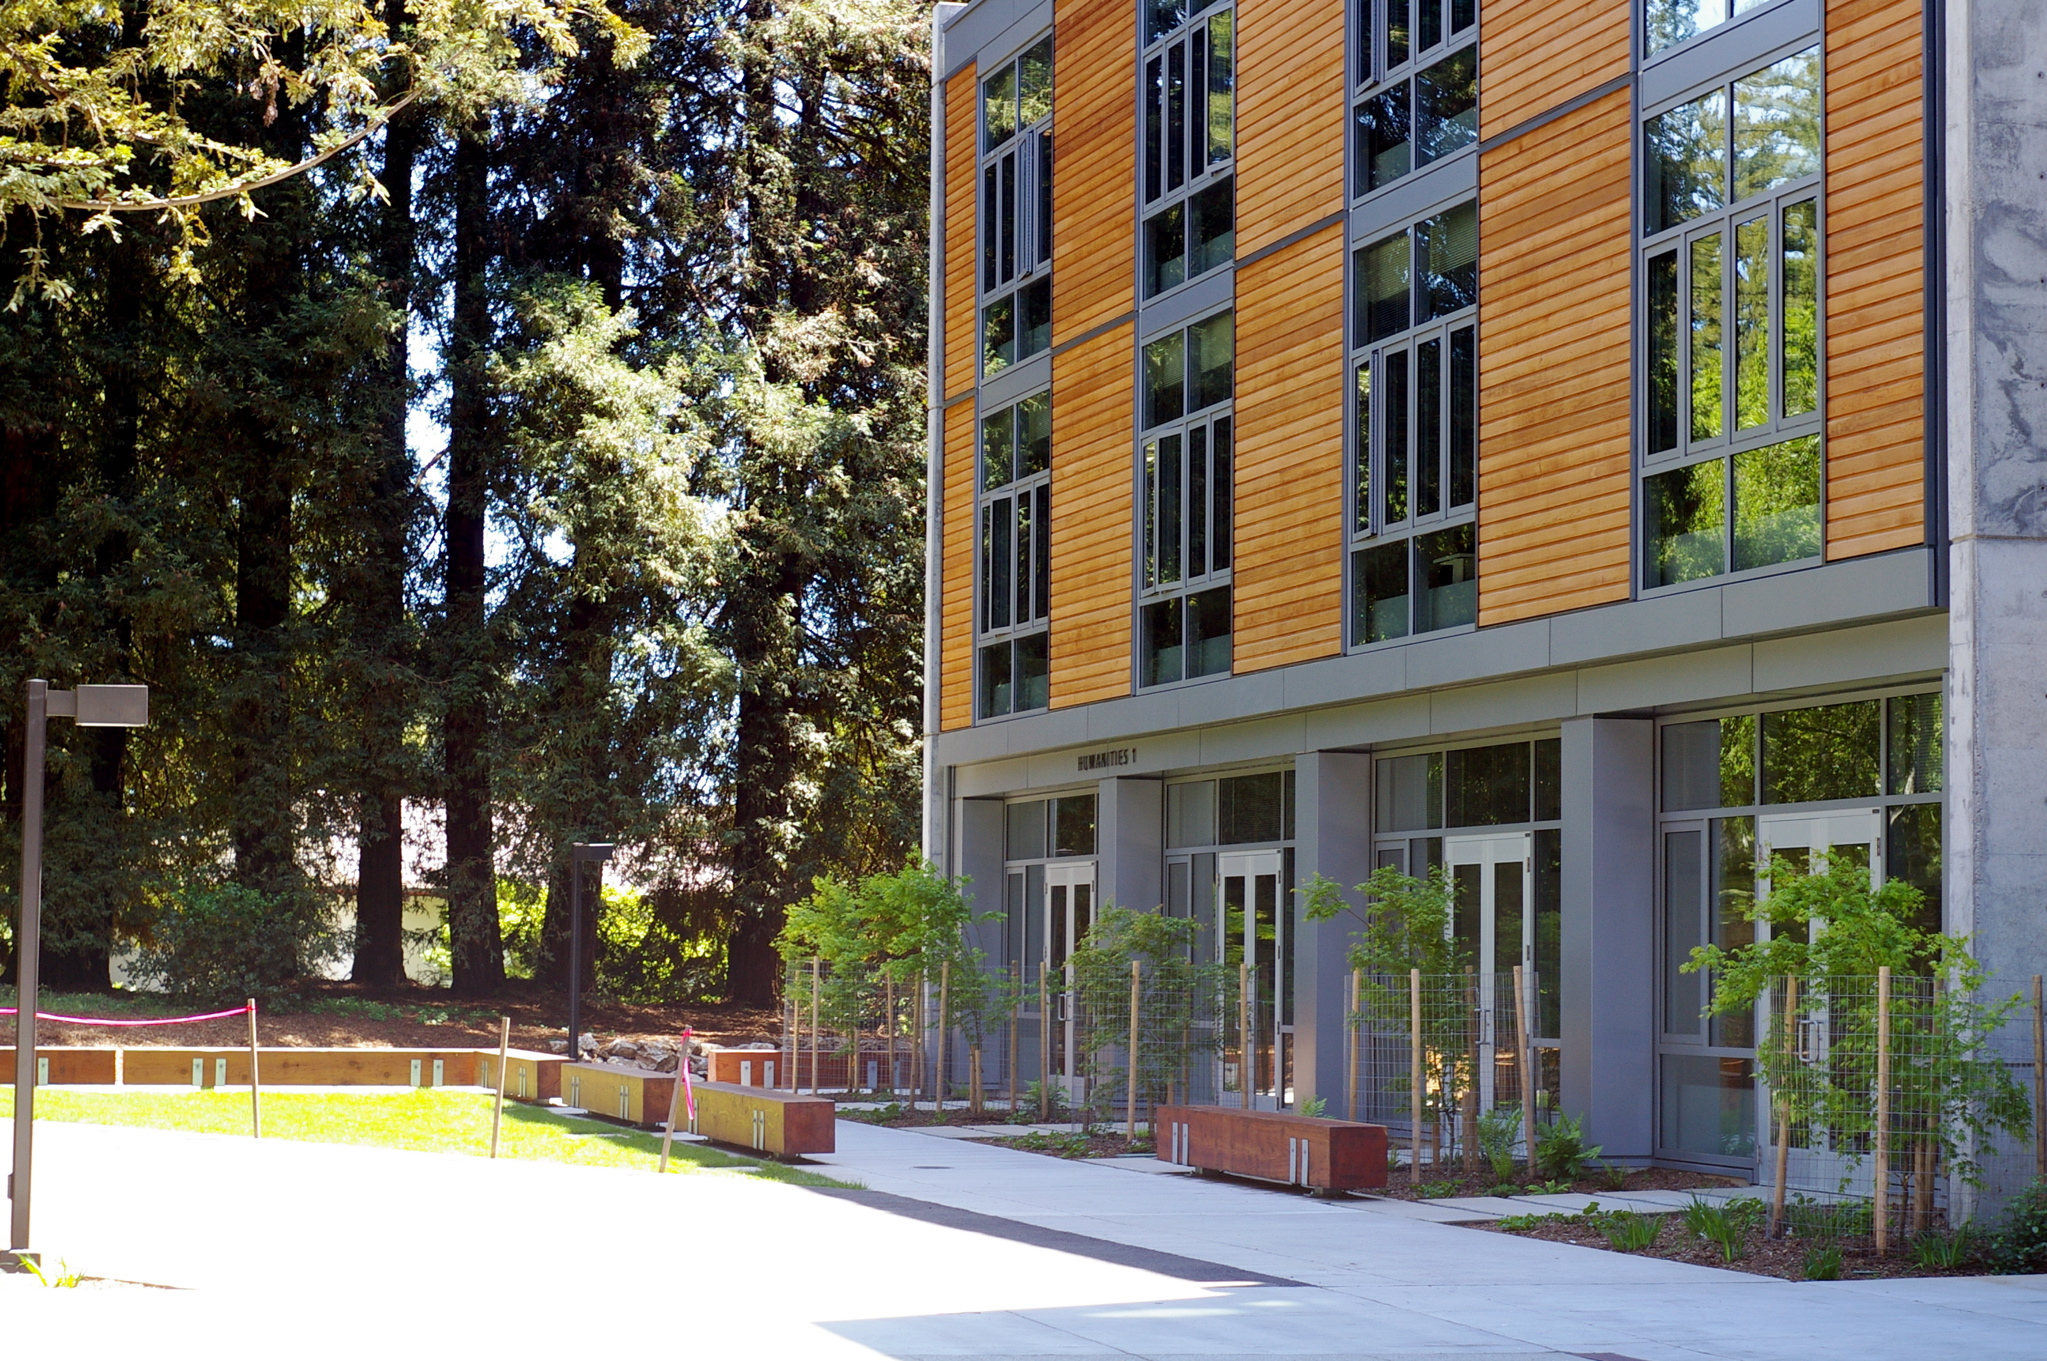 File:UCSC Humanities building.jpg - Wikimedia Commons